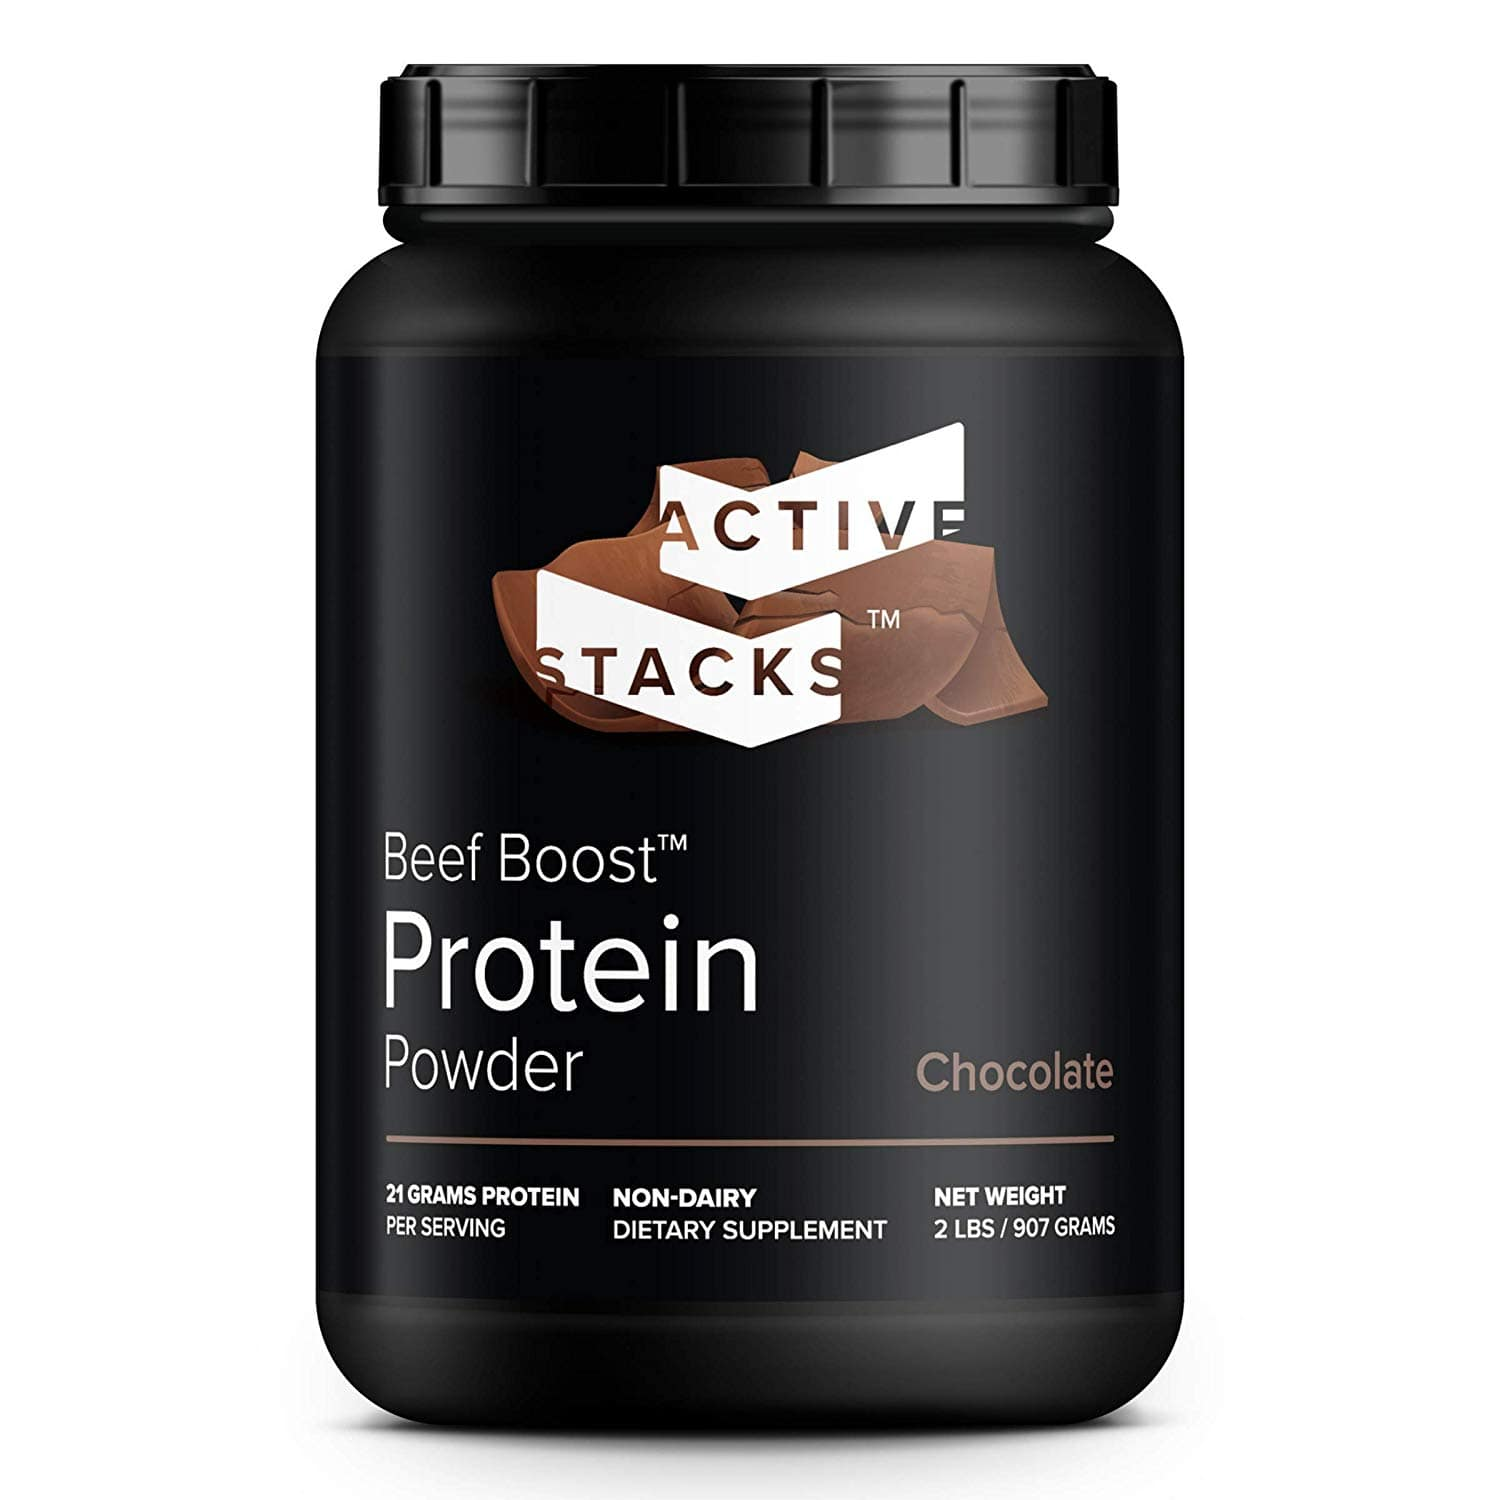 Active Stacks Beef Protein Powder (no whey) $39.90 after $10 off